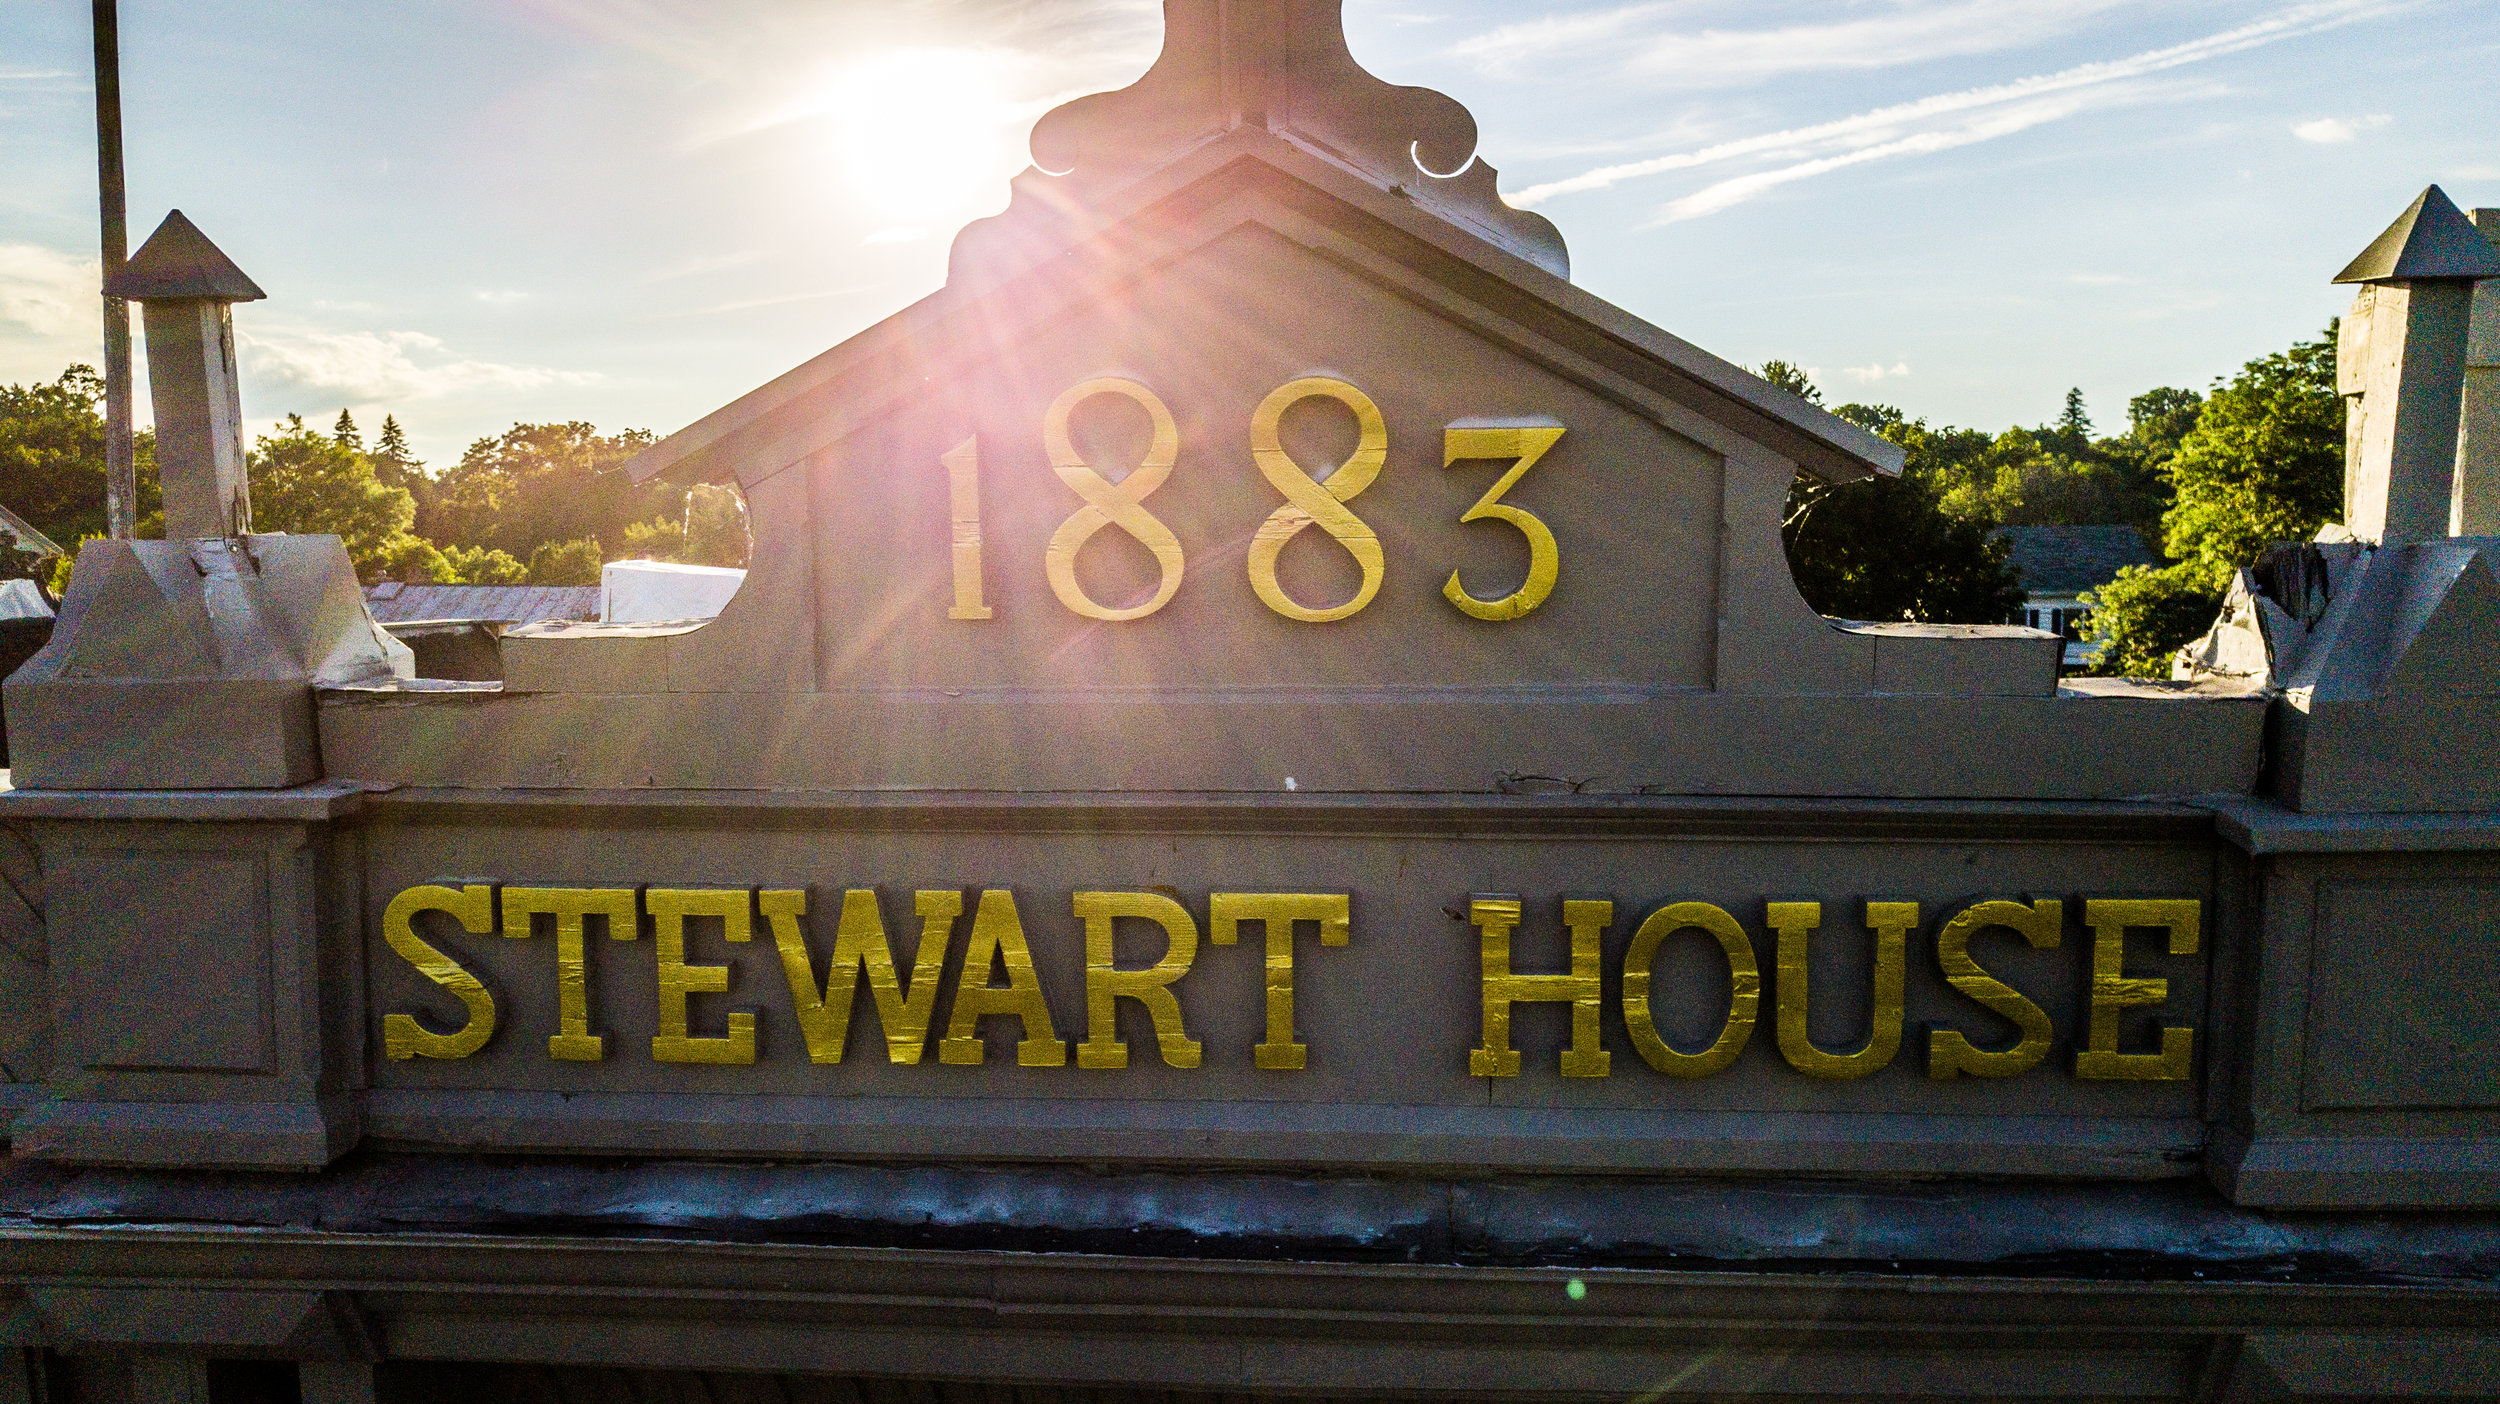 Table Hopping: Renovated Stewart House Reopening - By Steve Barnes